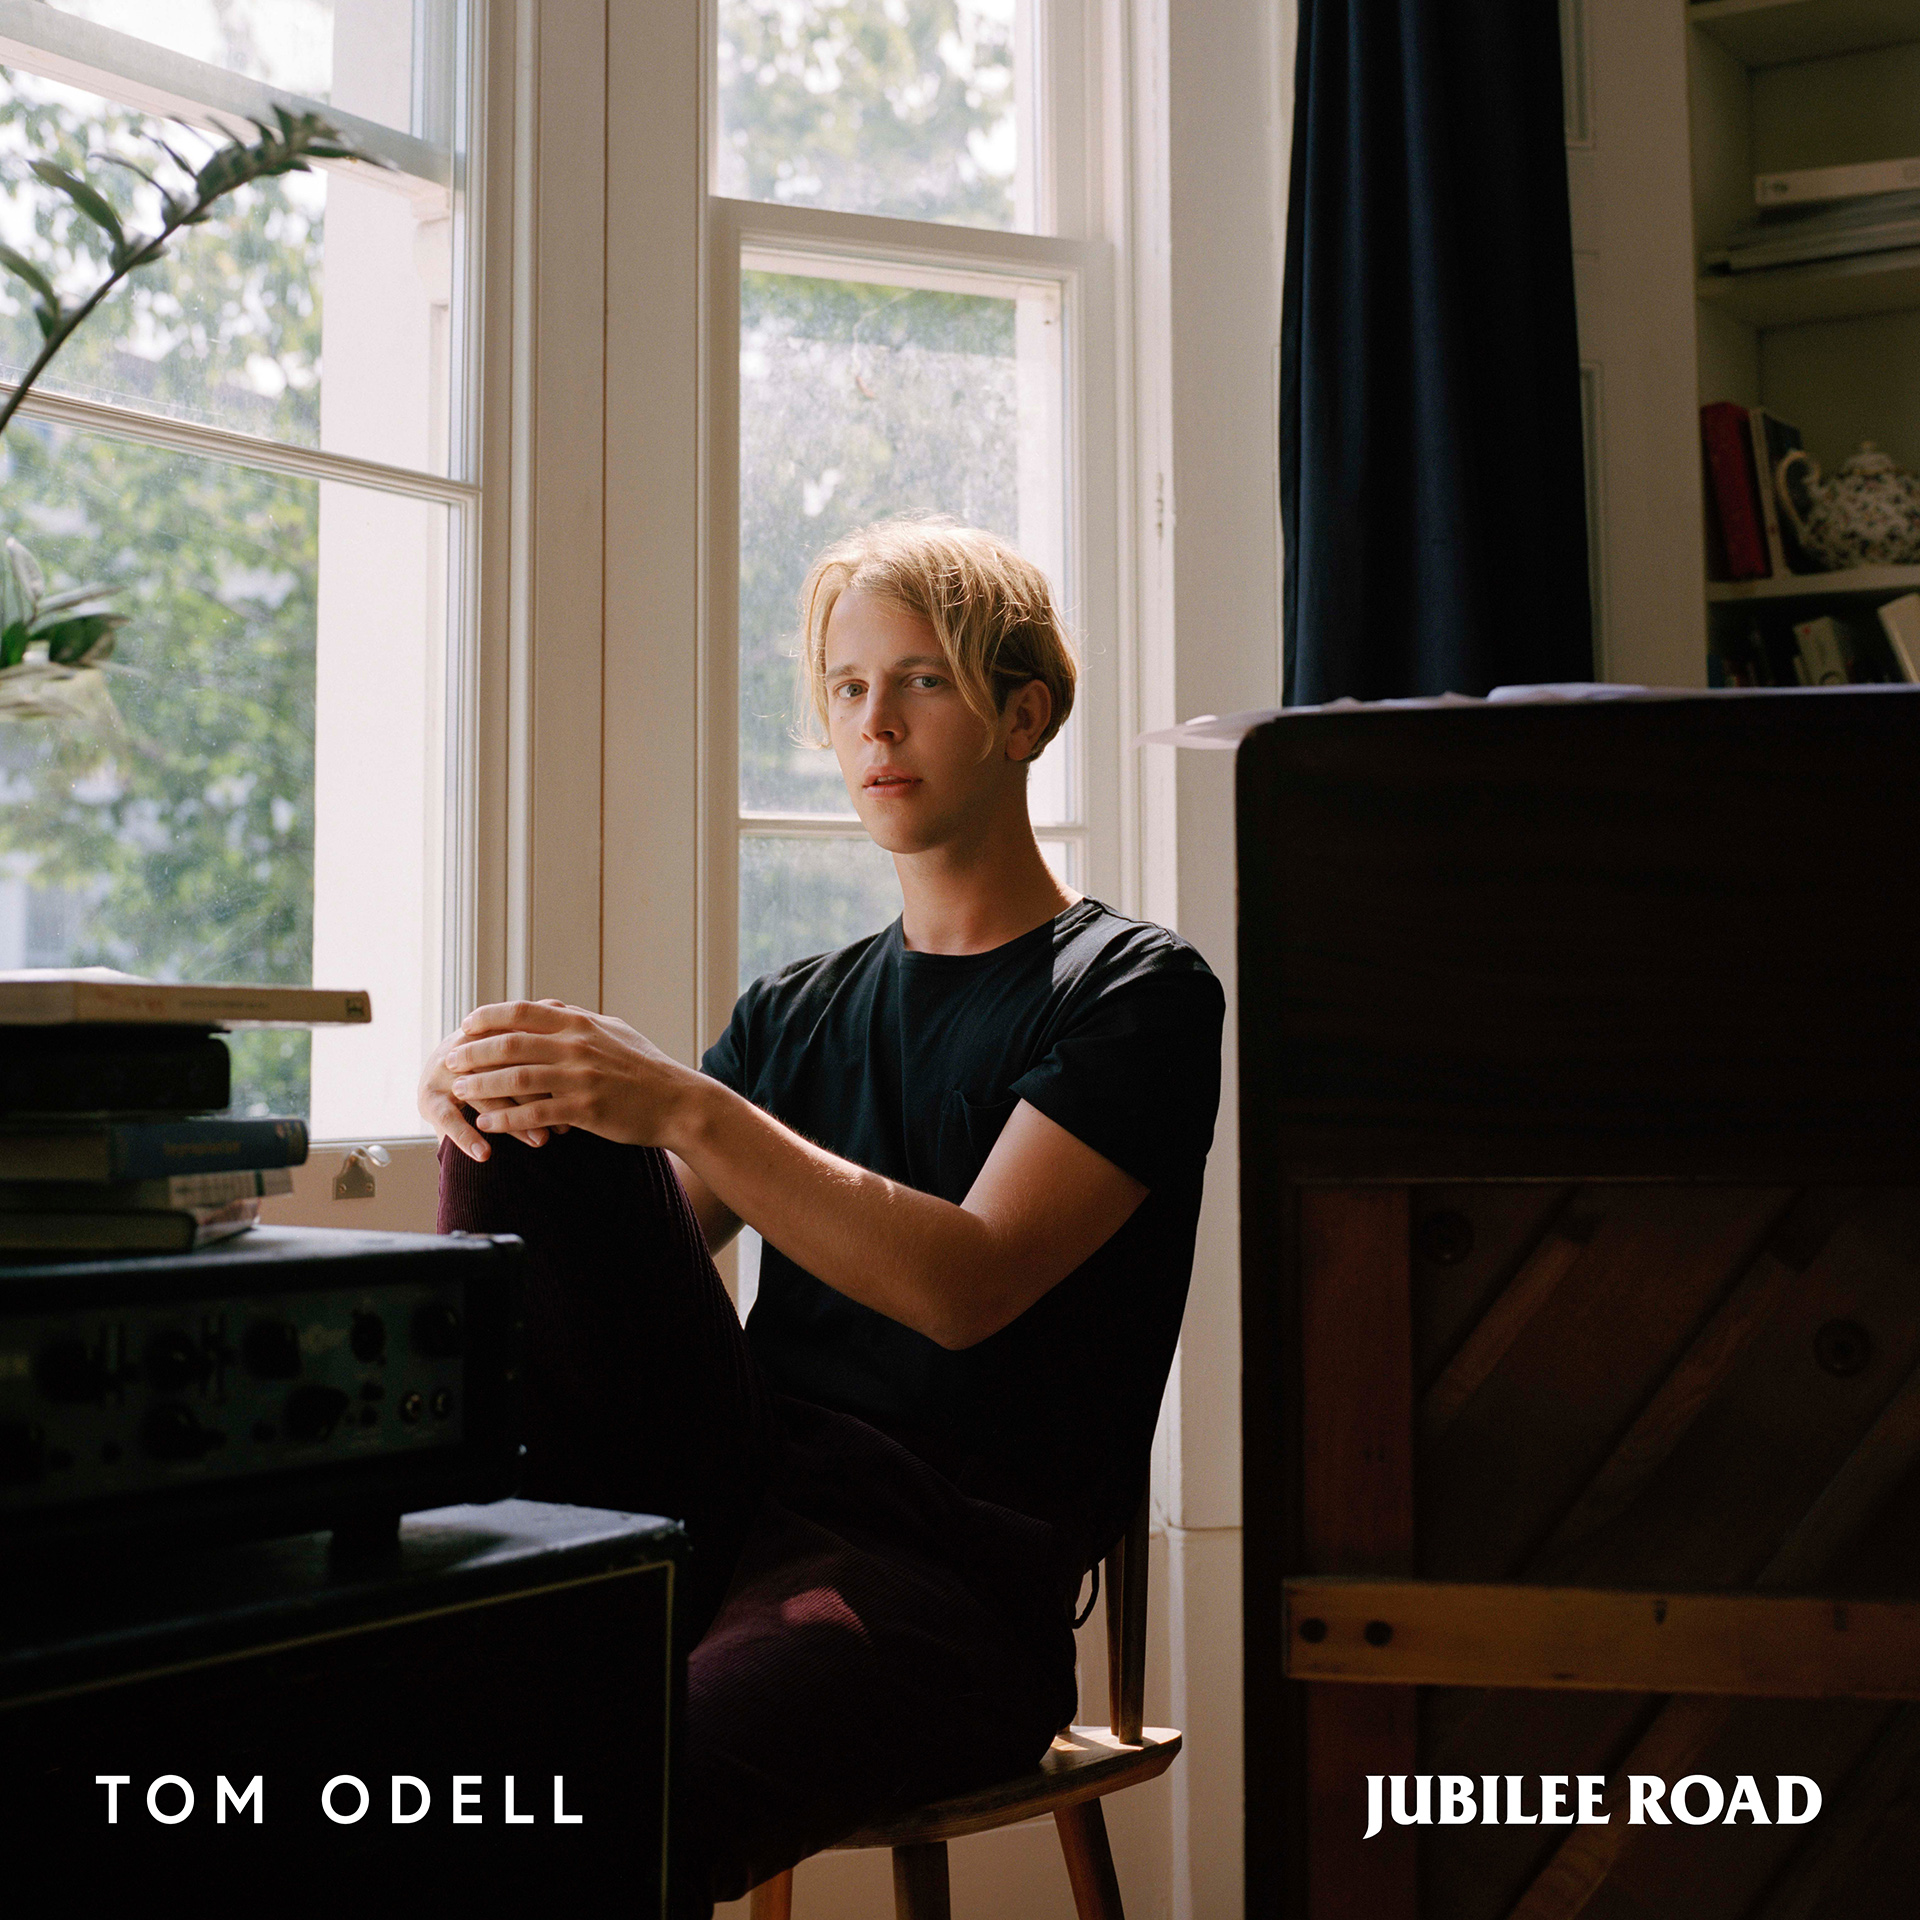 Image result for jubilee road tom odell album cover